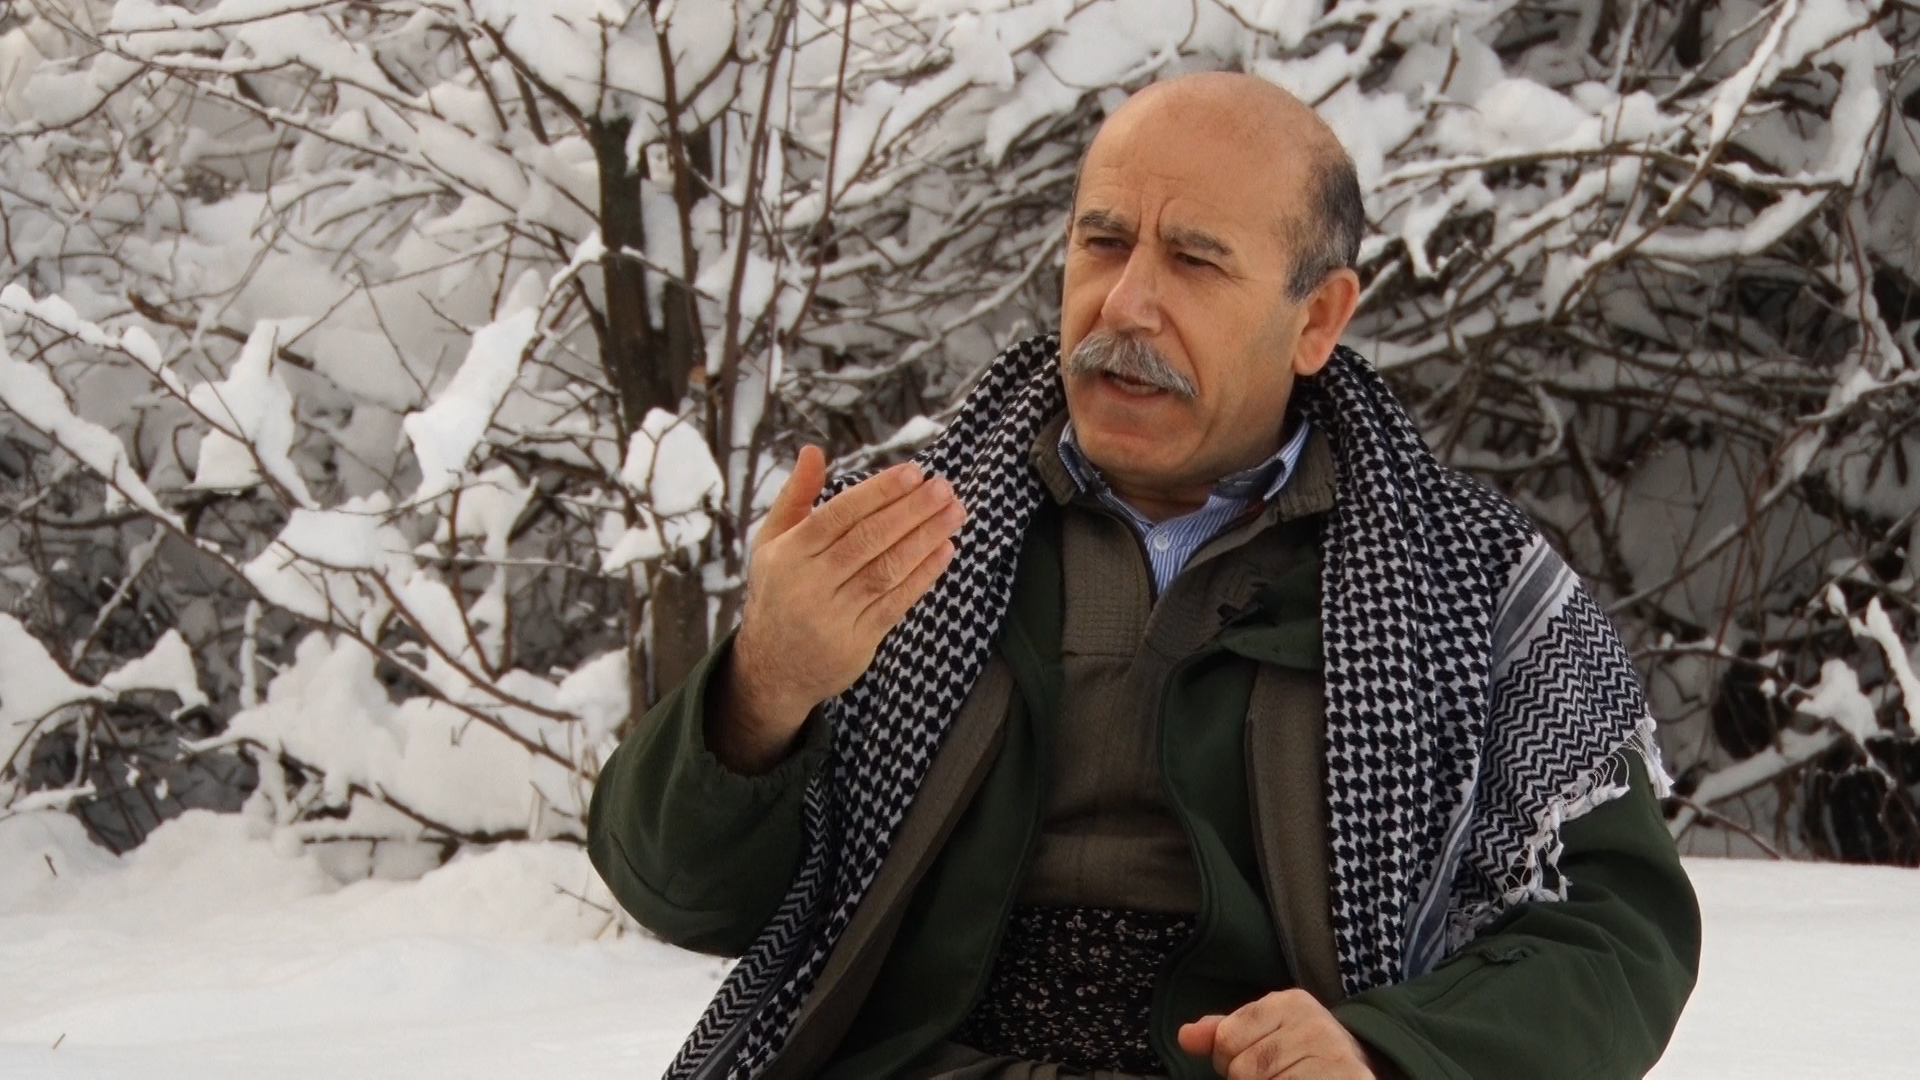 """SIAMAND MOEINI: """"THE DISPUTE OF THE IRANIAN PEOPLE IS THE LACK OF JUSTICE AND DEMOCRACY."""""""